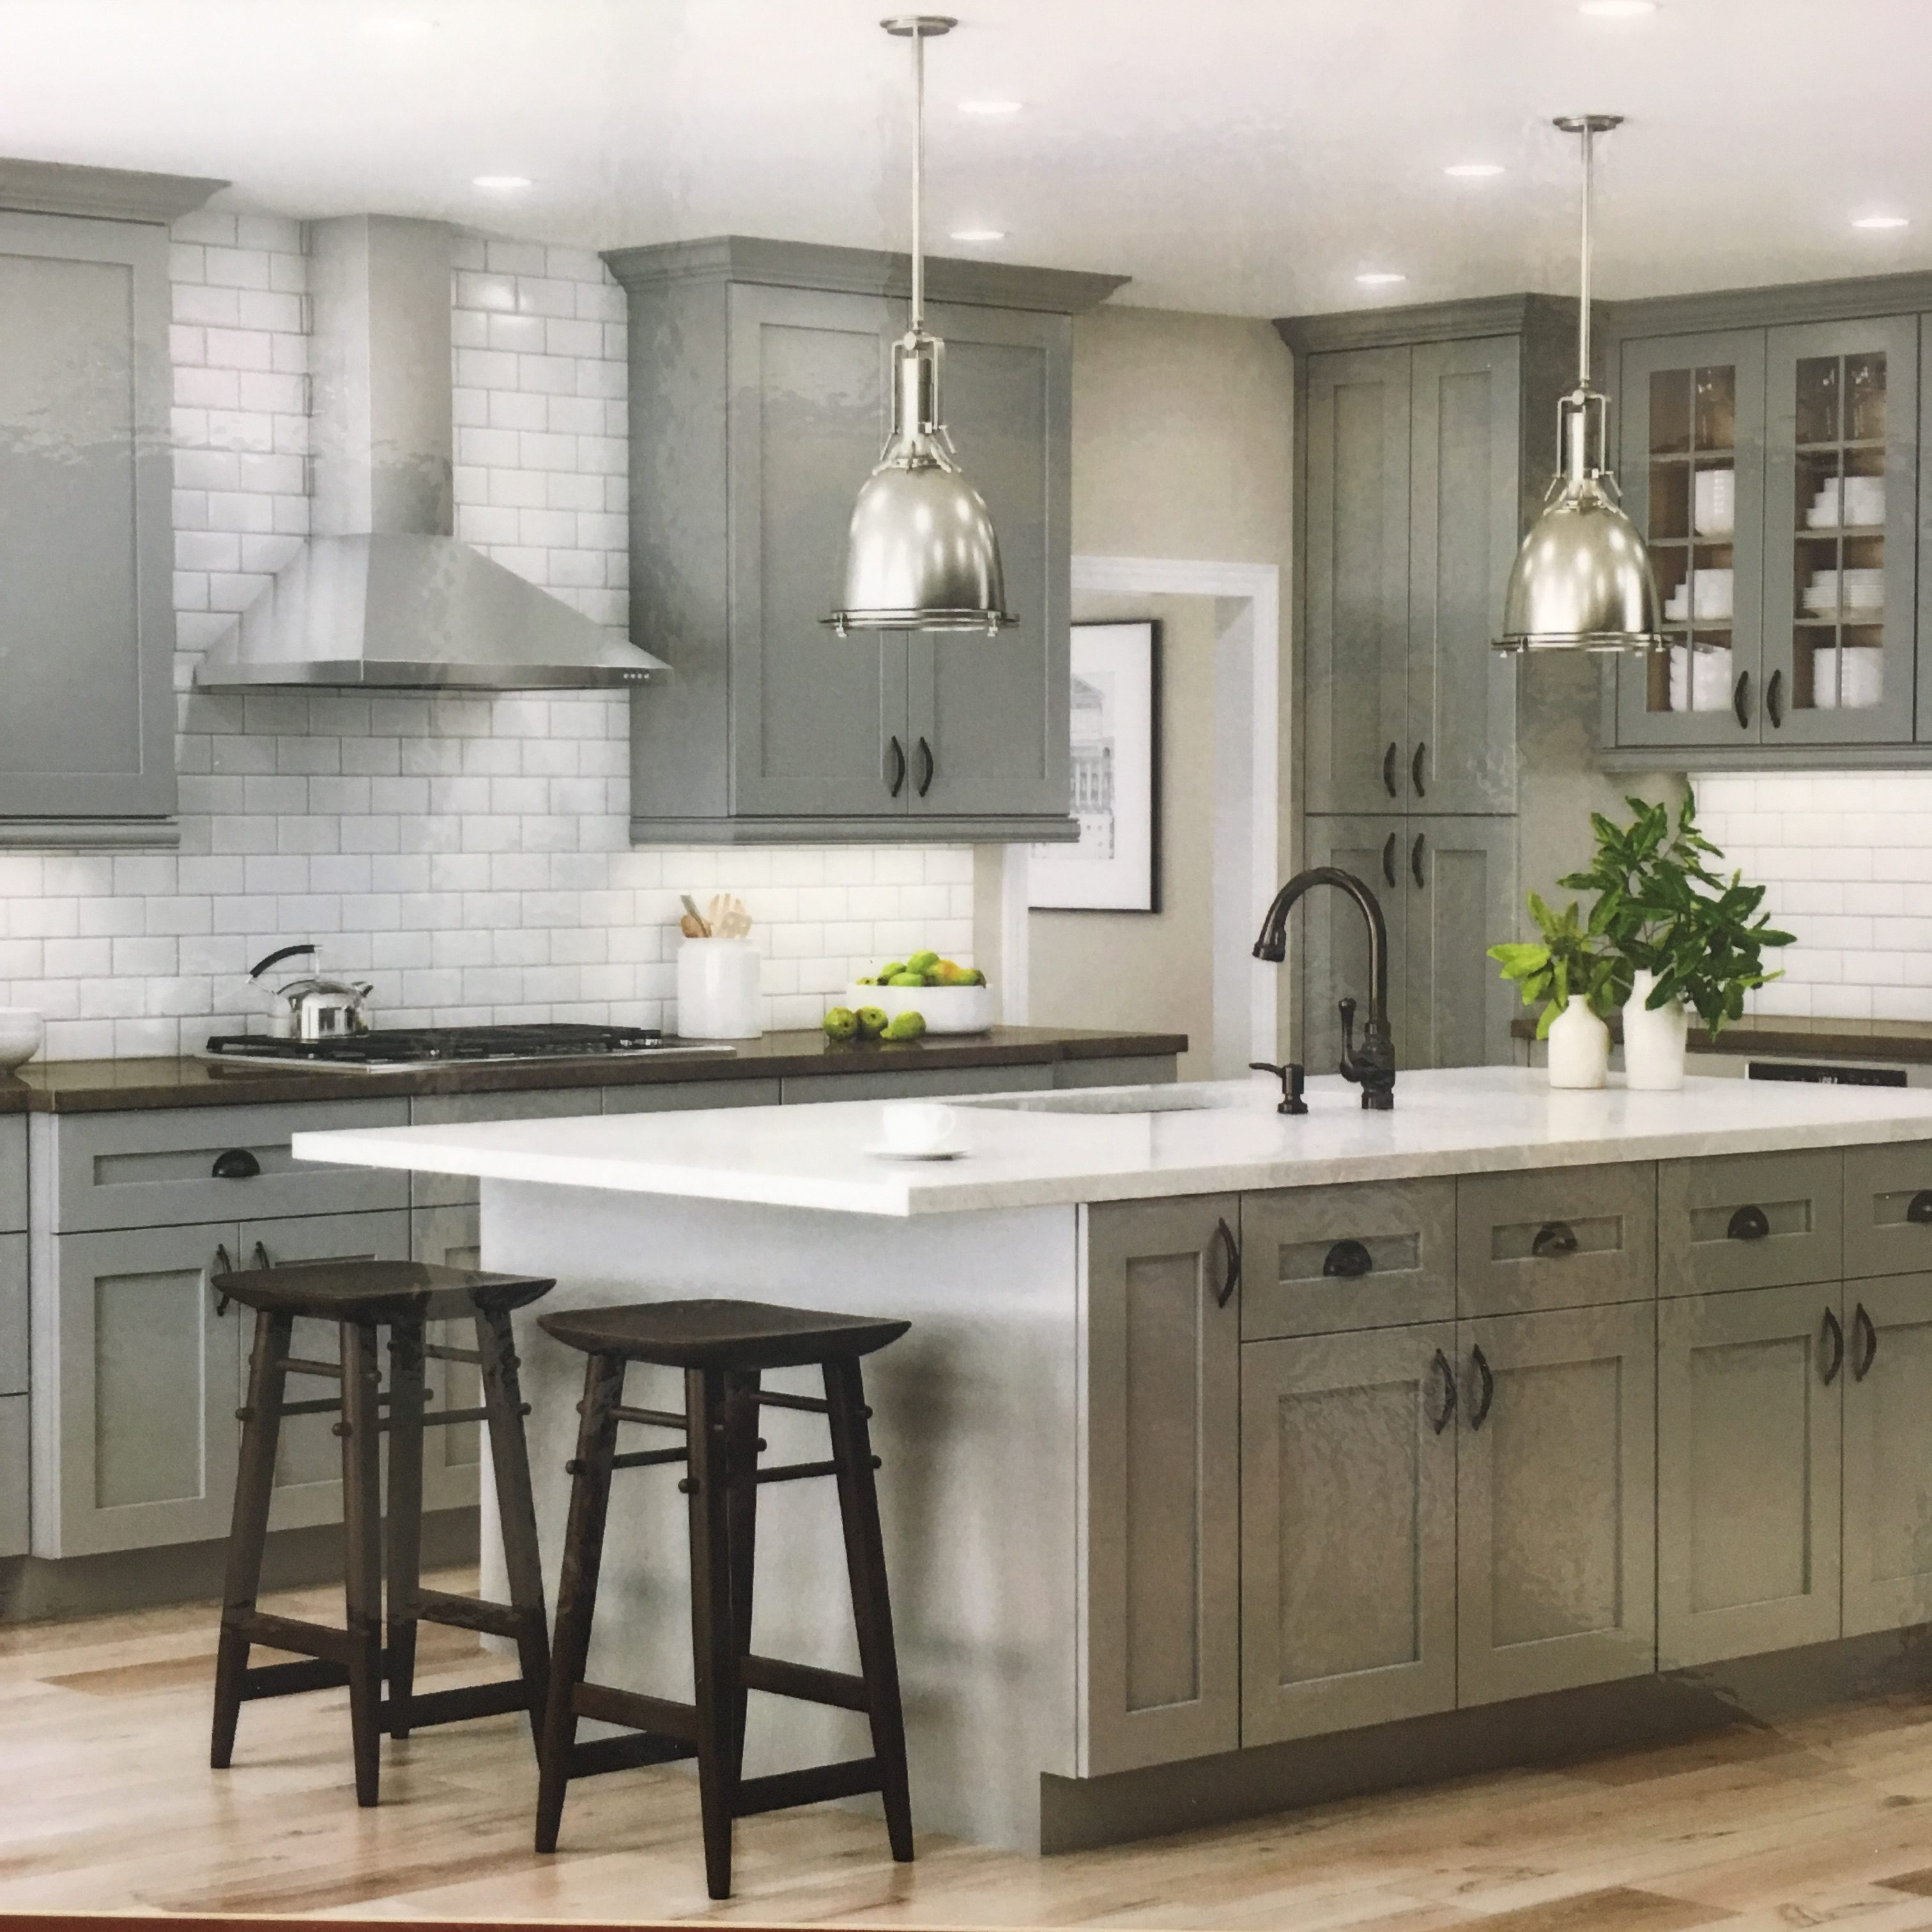 Lovely Cabinets Made In America And In Stock!